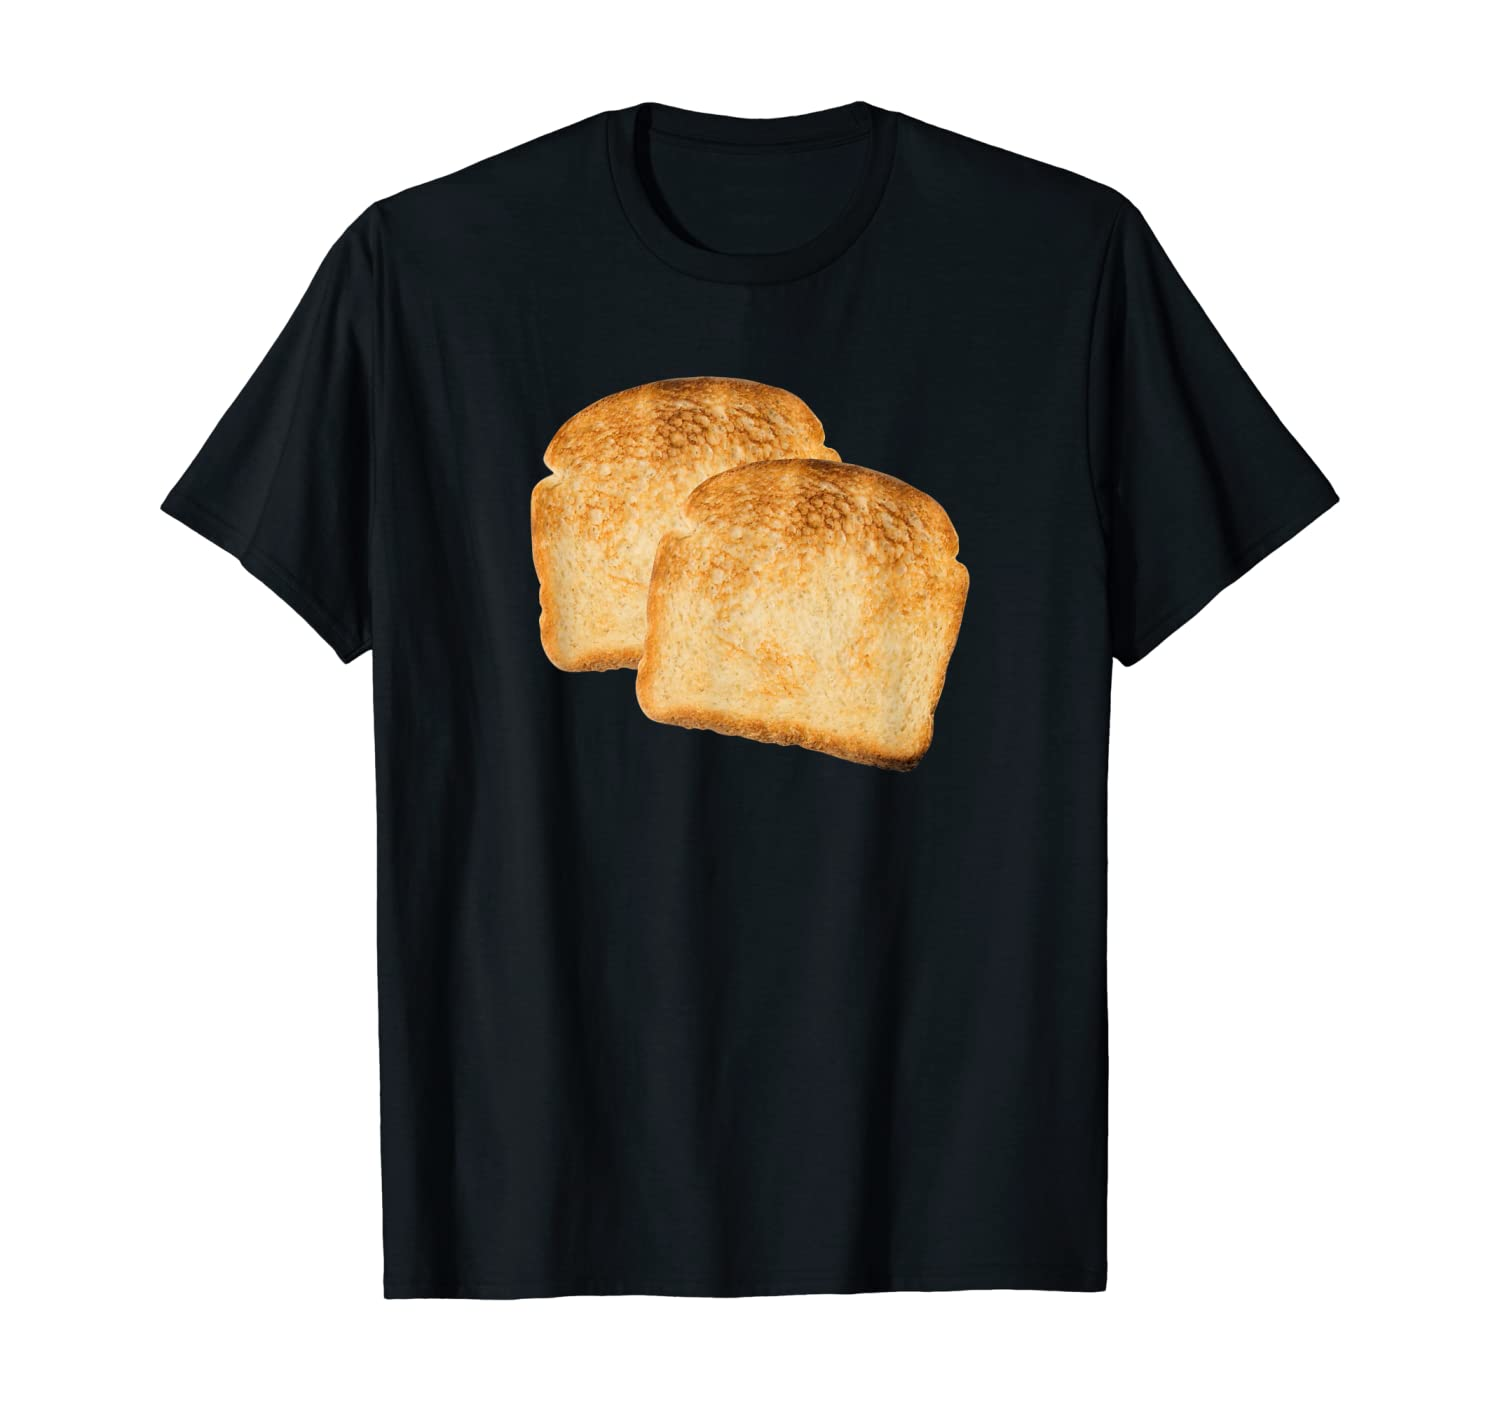 Toasted Bread Toast Maker Funny Halloween Costume T-Shirt